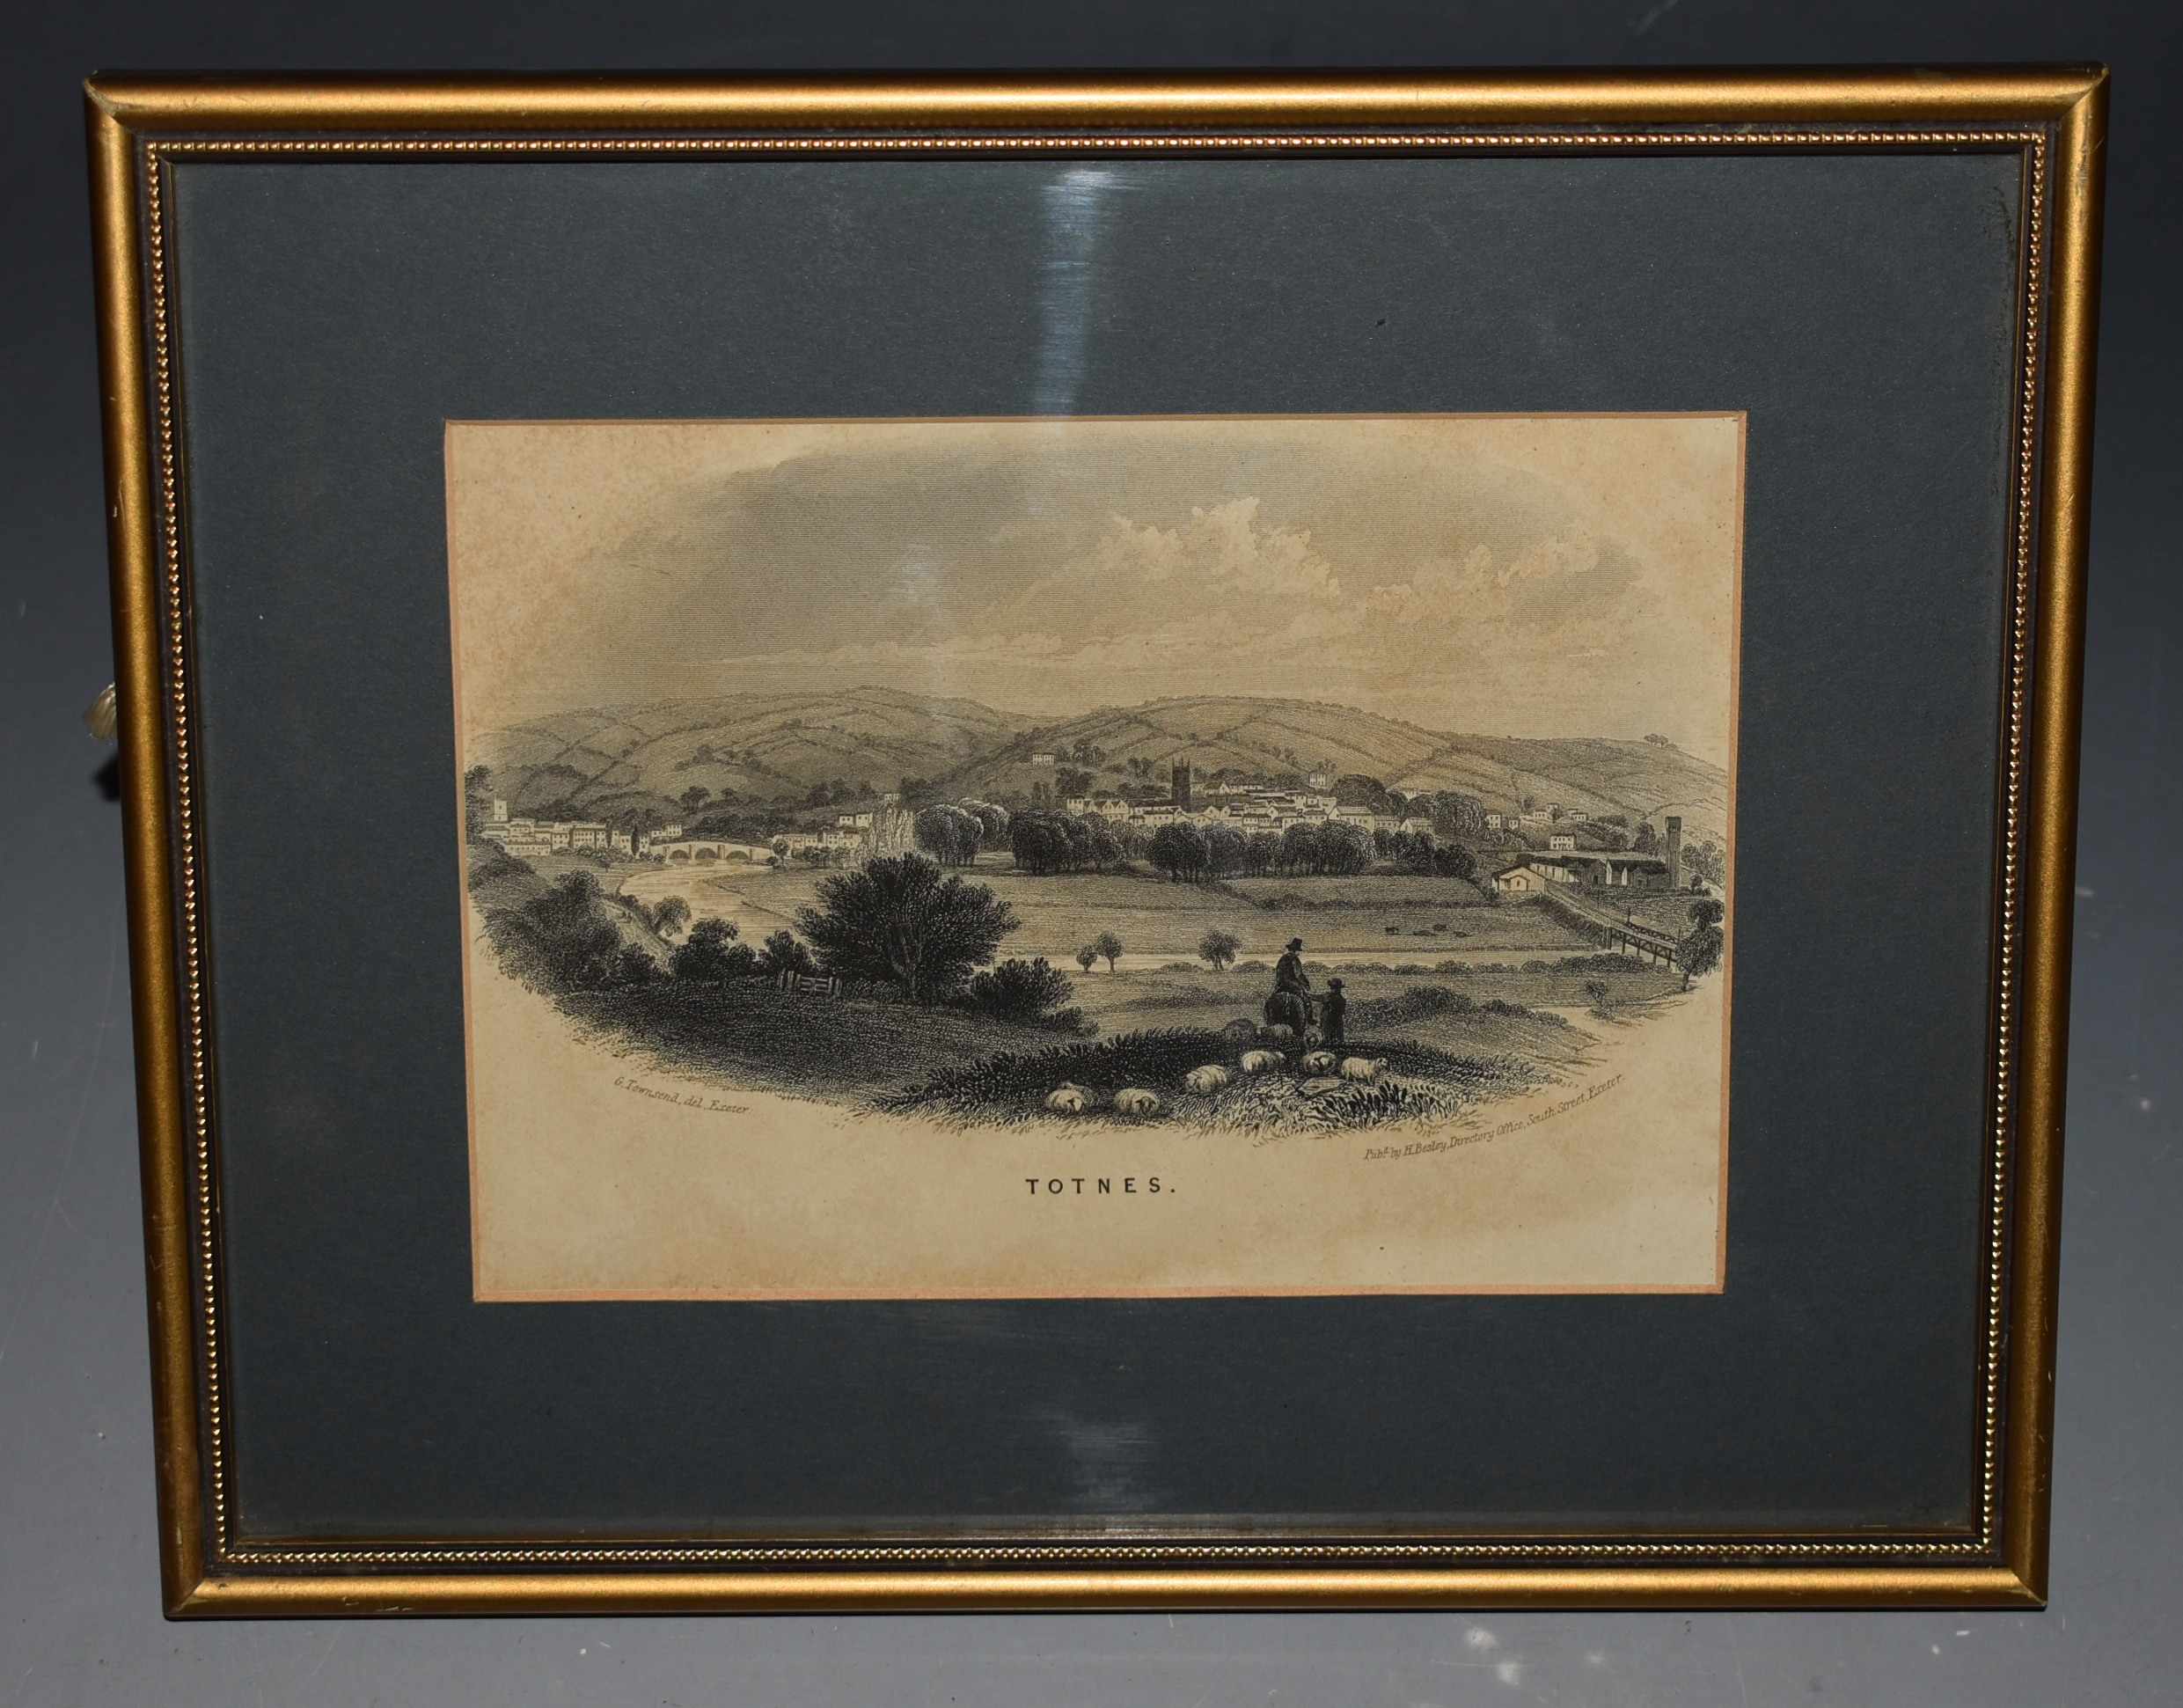 Image for Totnes. Engraving.